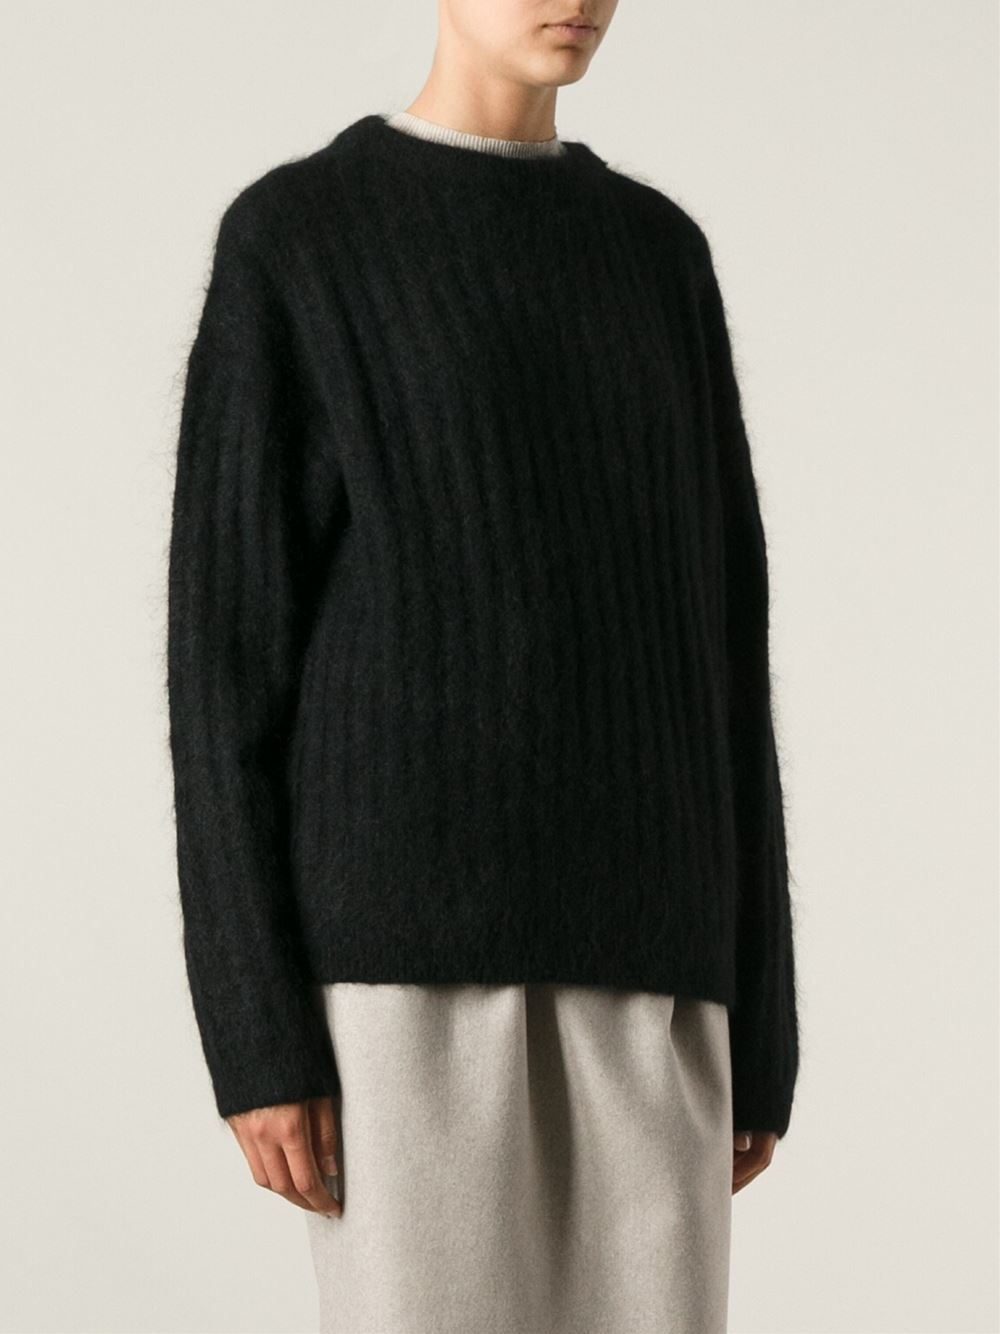 Acne studios Knit Sweater in Black | Lyst